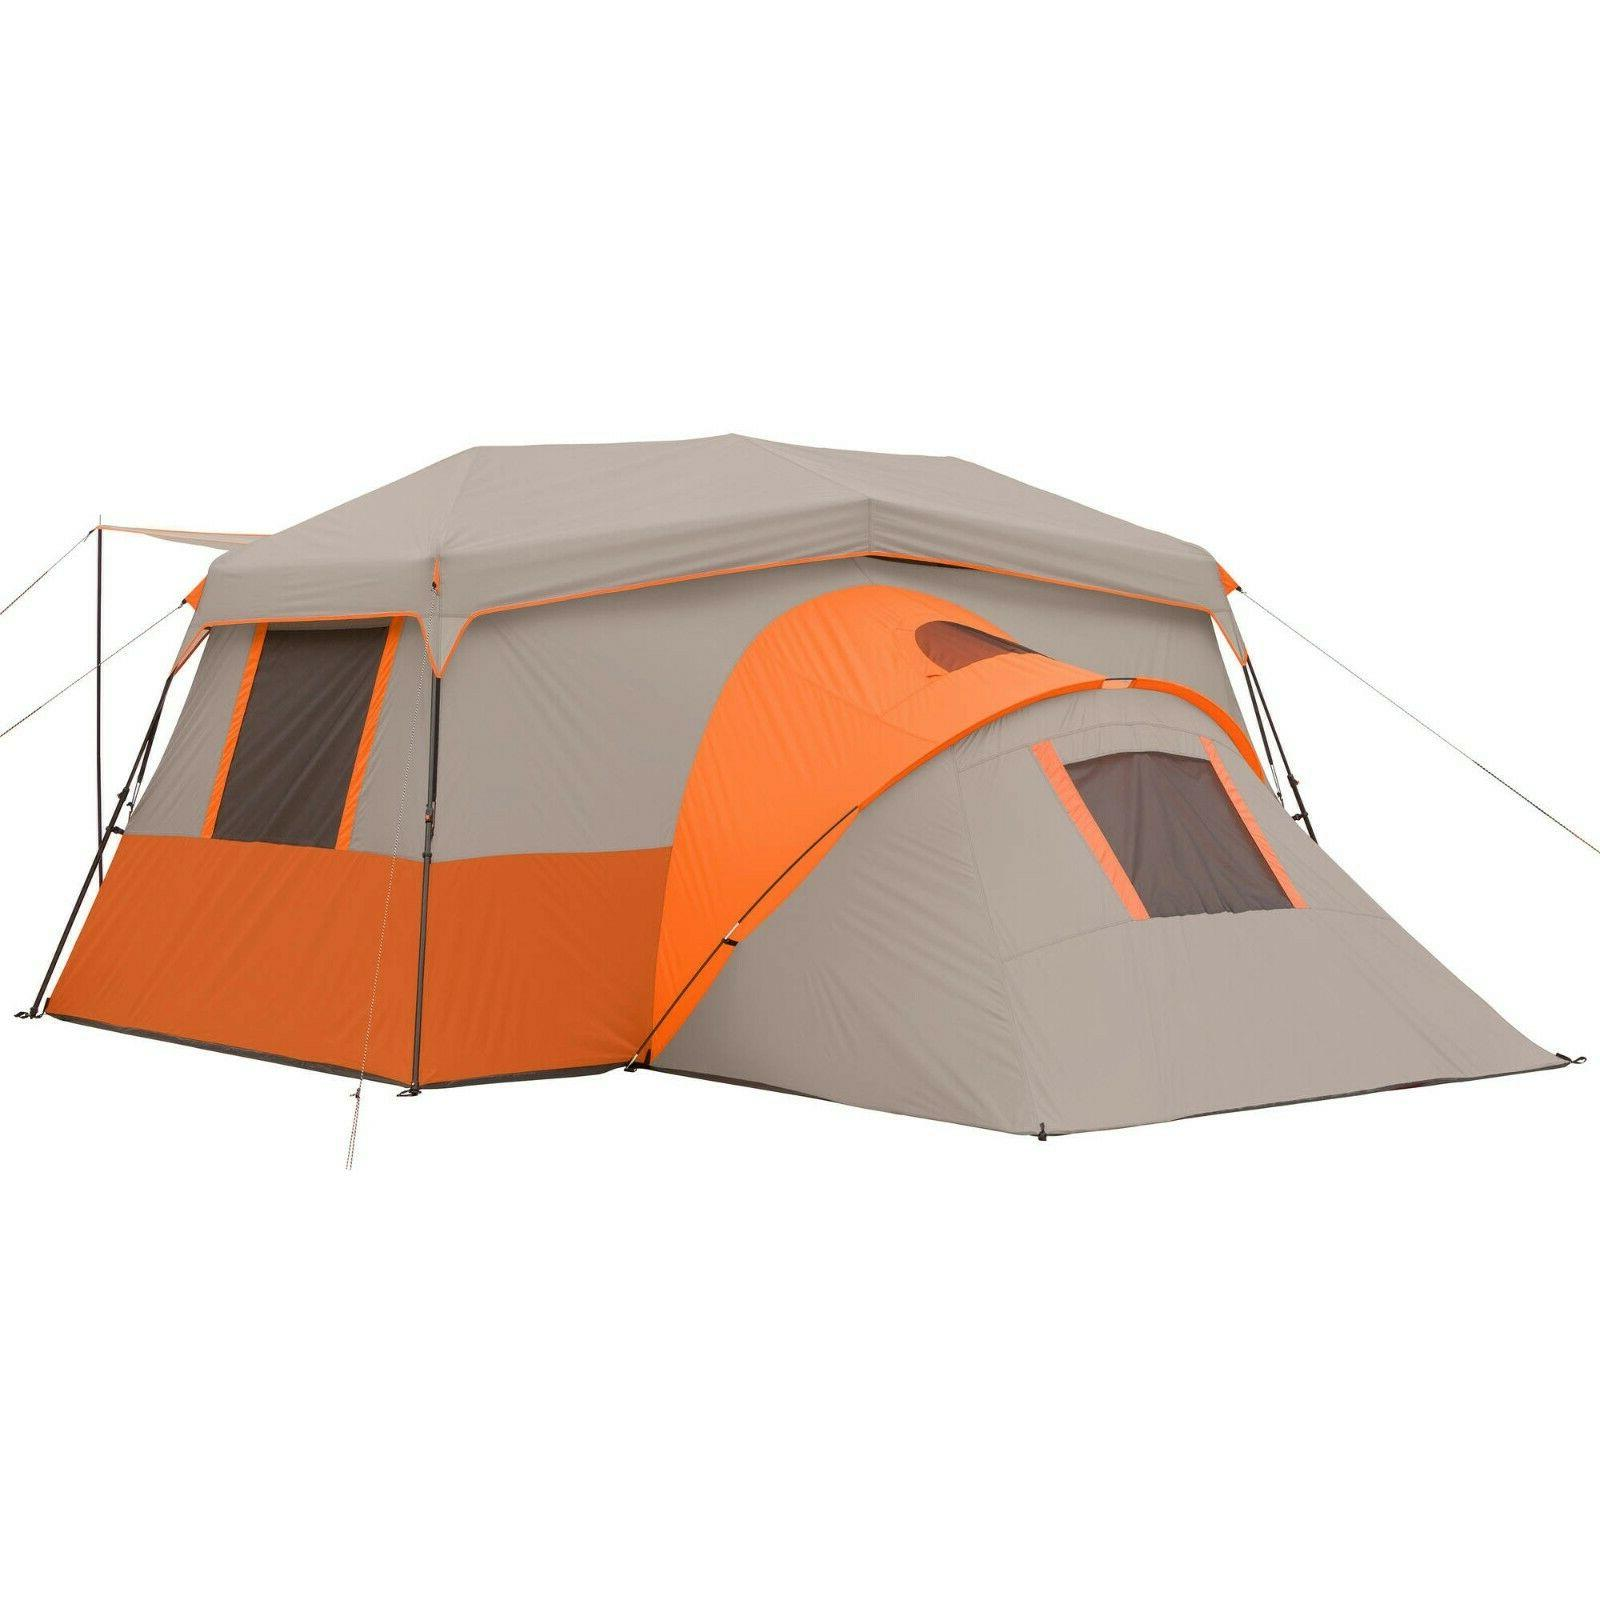 Large 11 Tent 3 Rooms Hiking NEW